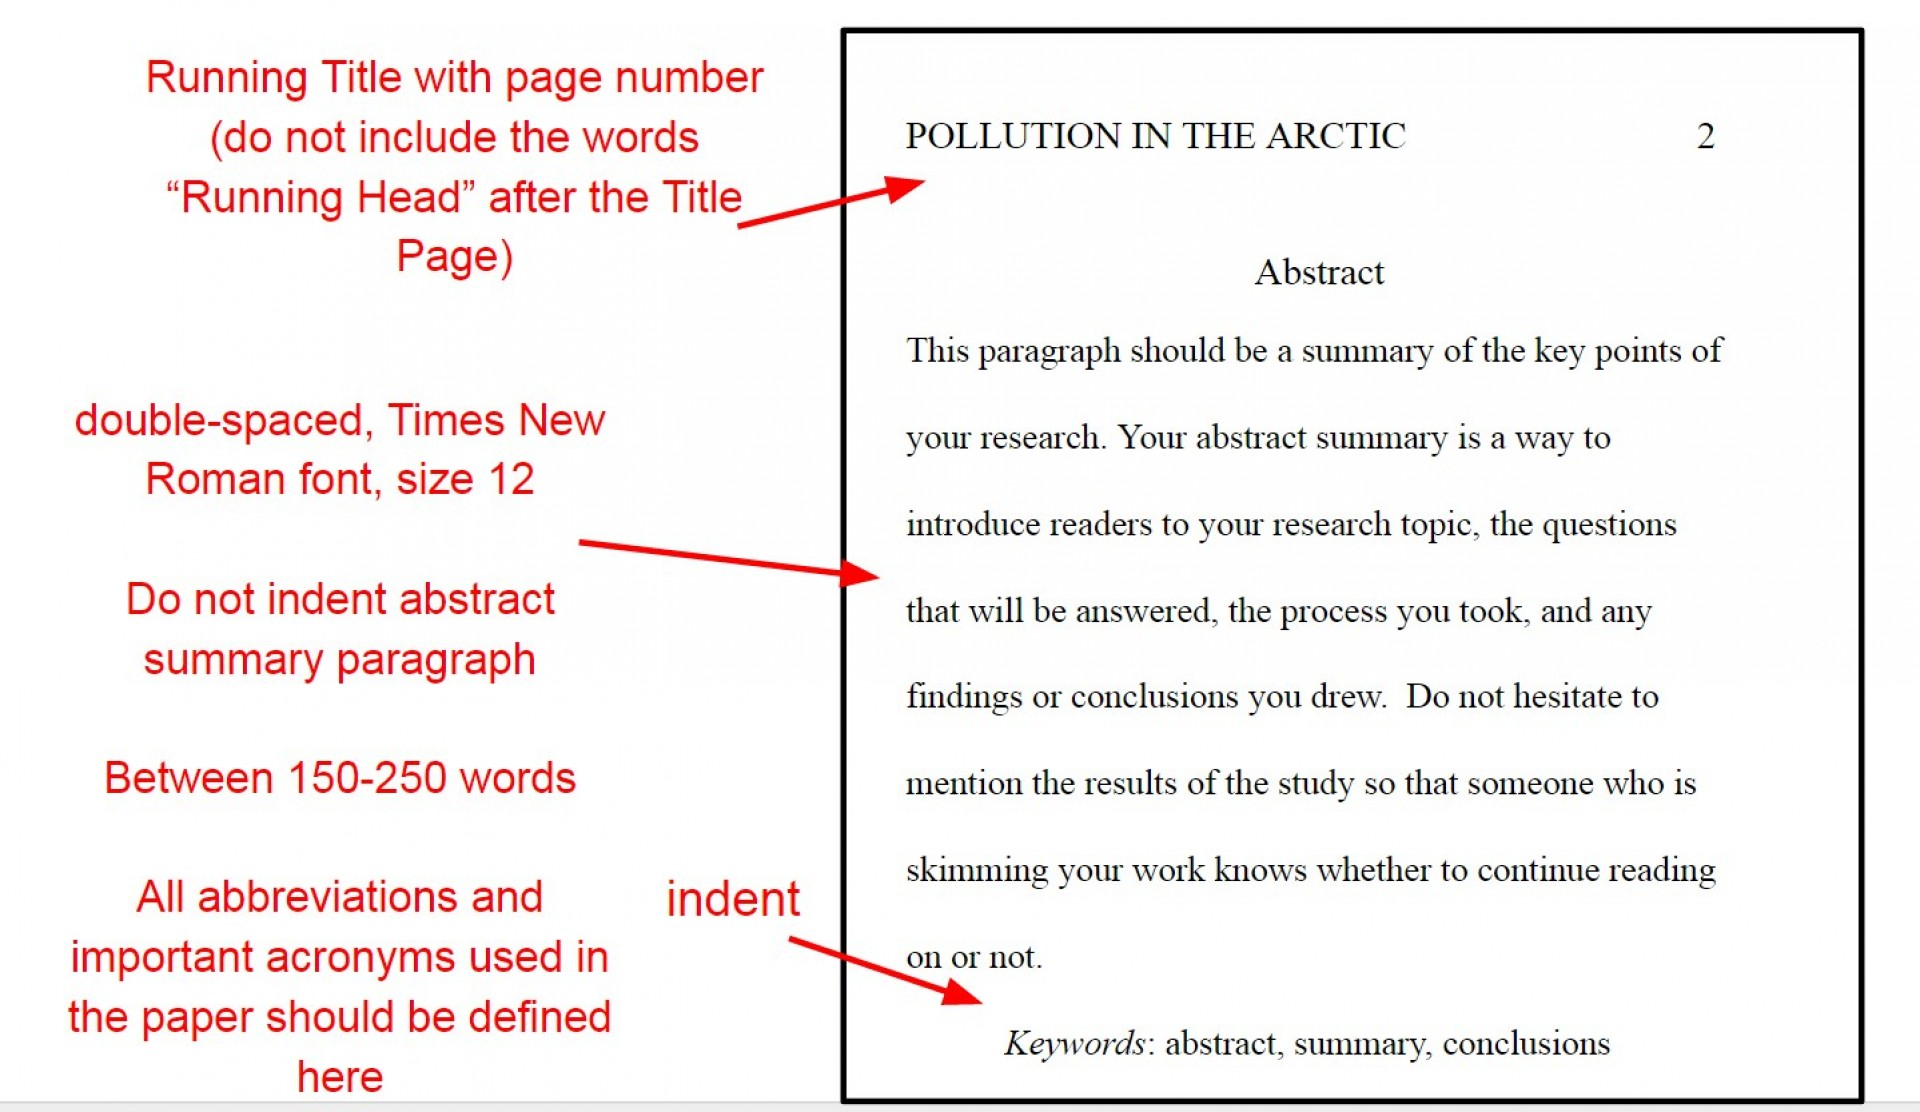 004 Abstract In Research Paper Apa Rare For Style Without 1920